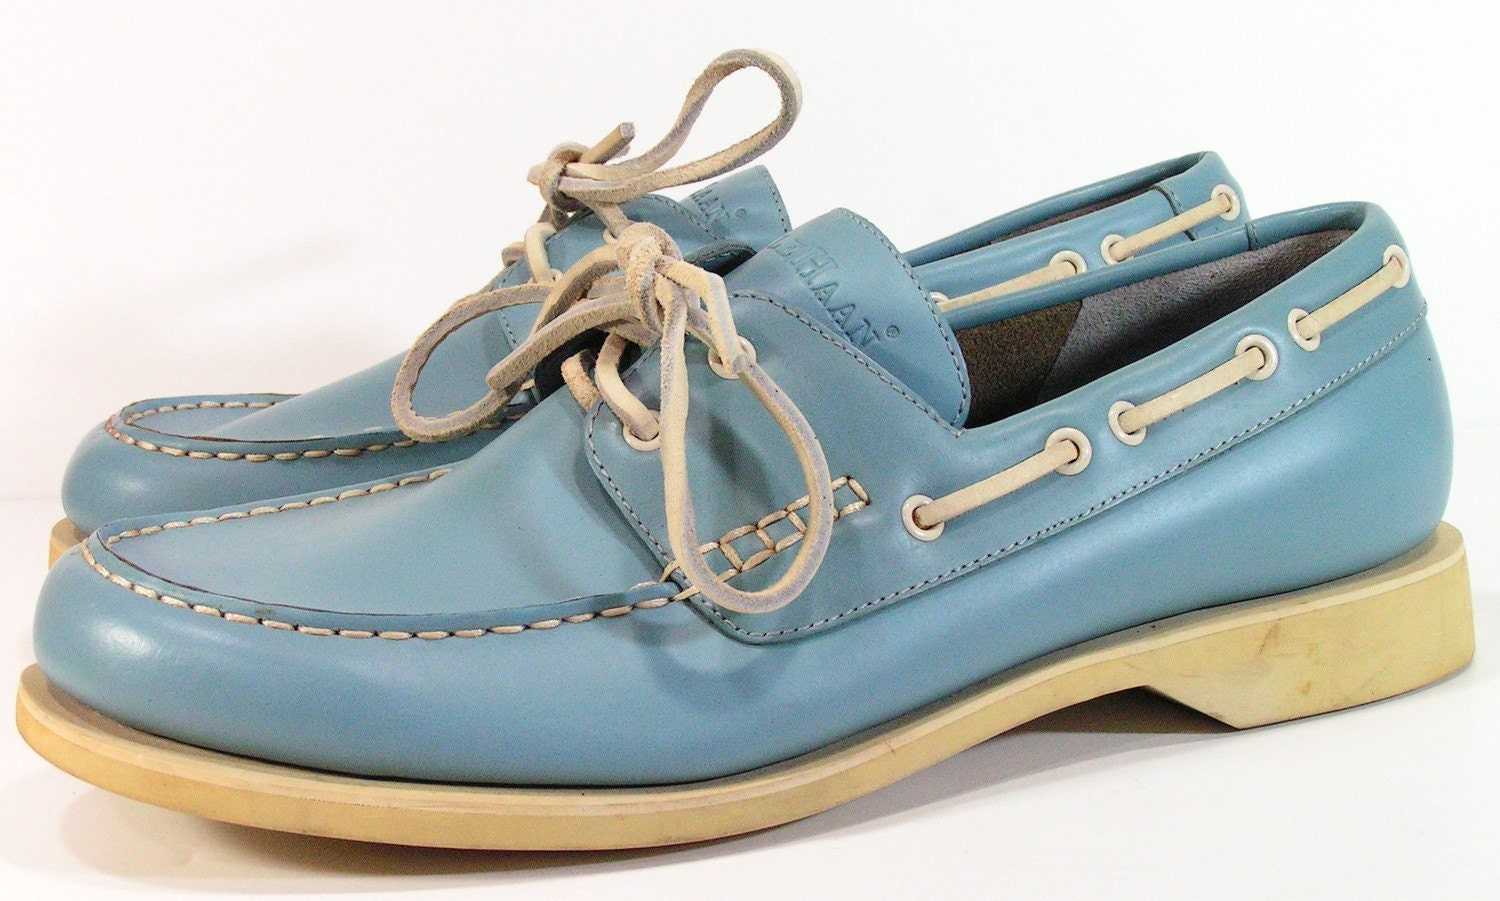 cole haan boat shoes mens 11 D M baby blue by